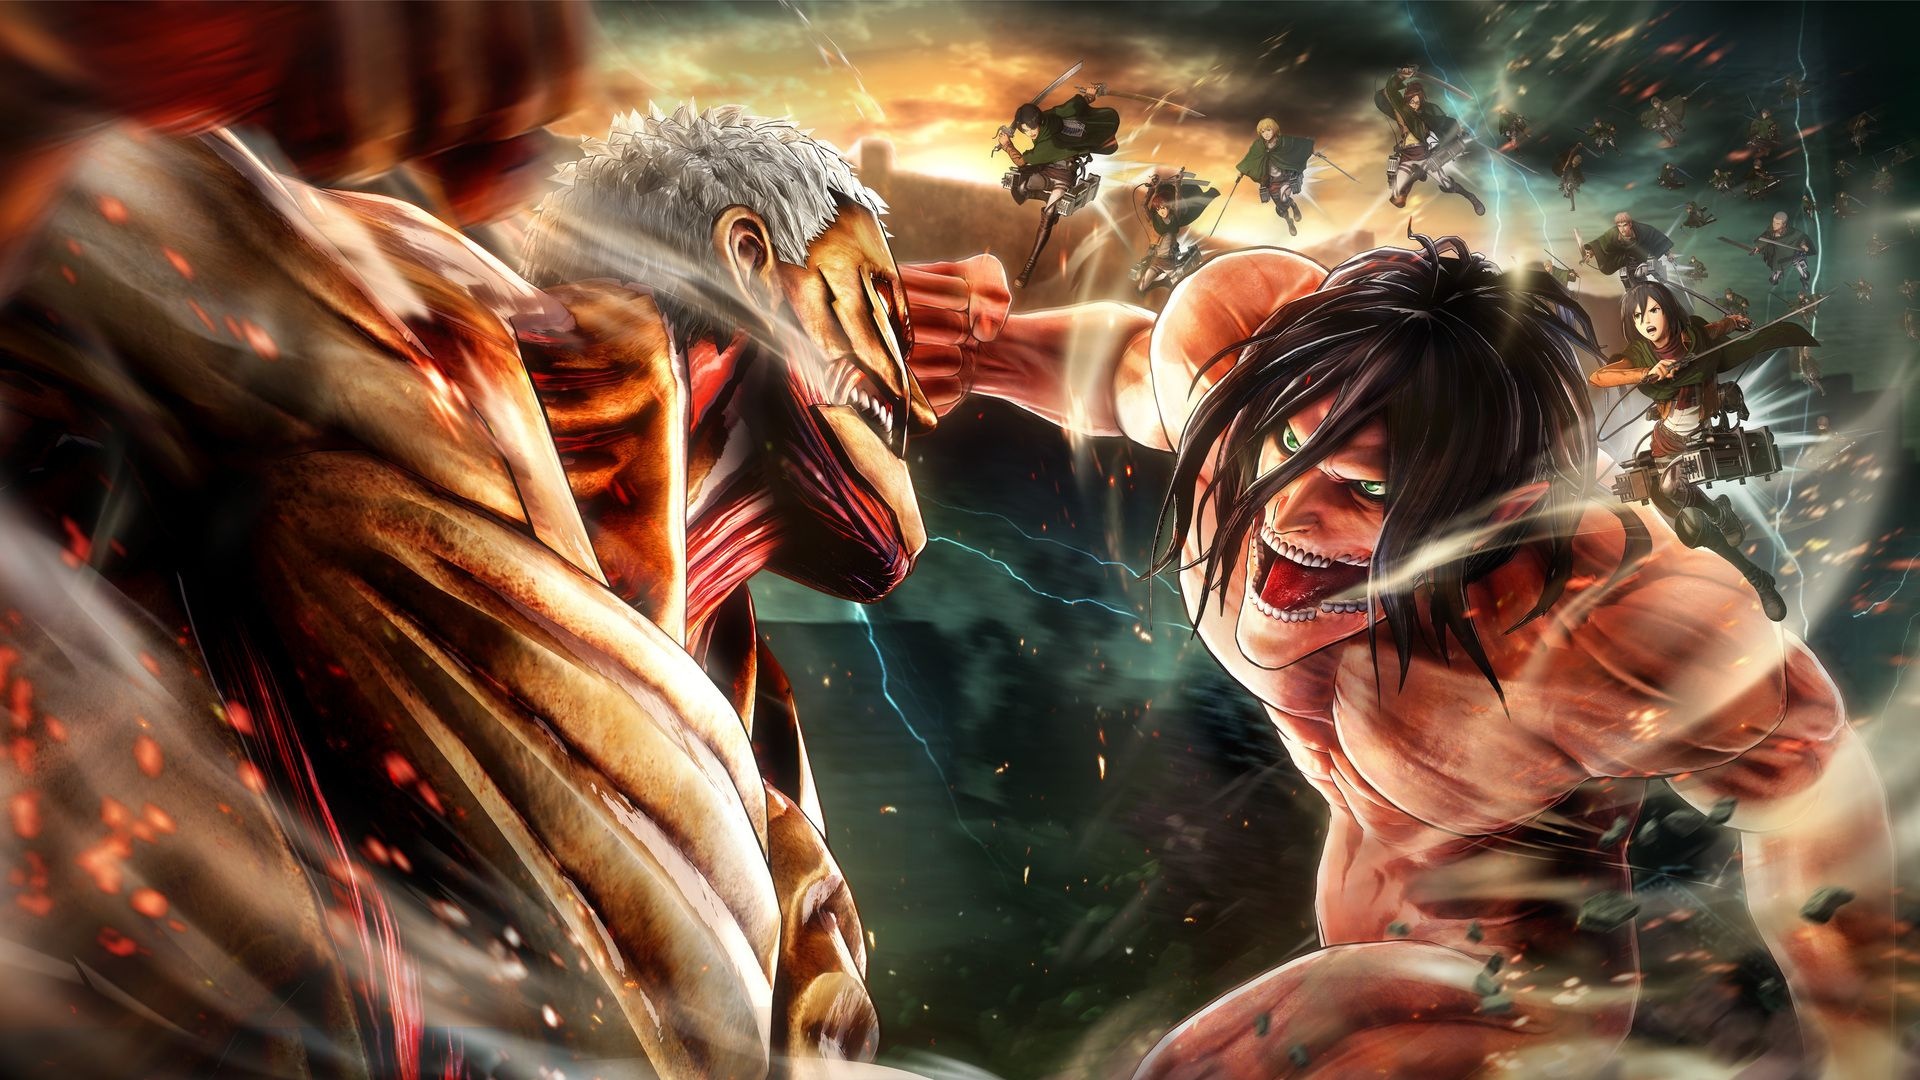 Attack On Titan Laptop Wallpapers Top Free Attack On Titan Laptop Backgrounds Wallpaperaccess